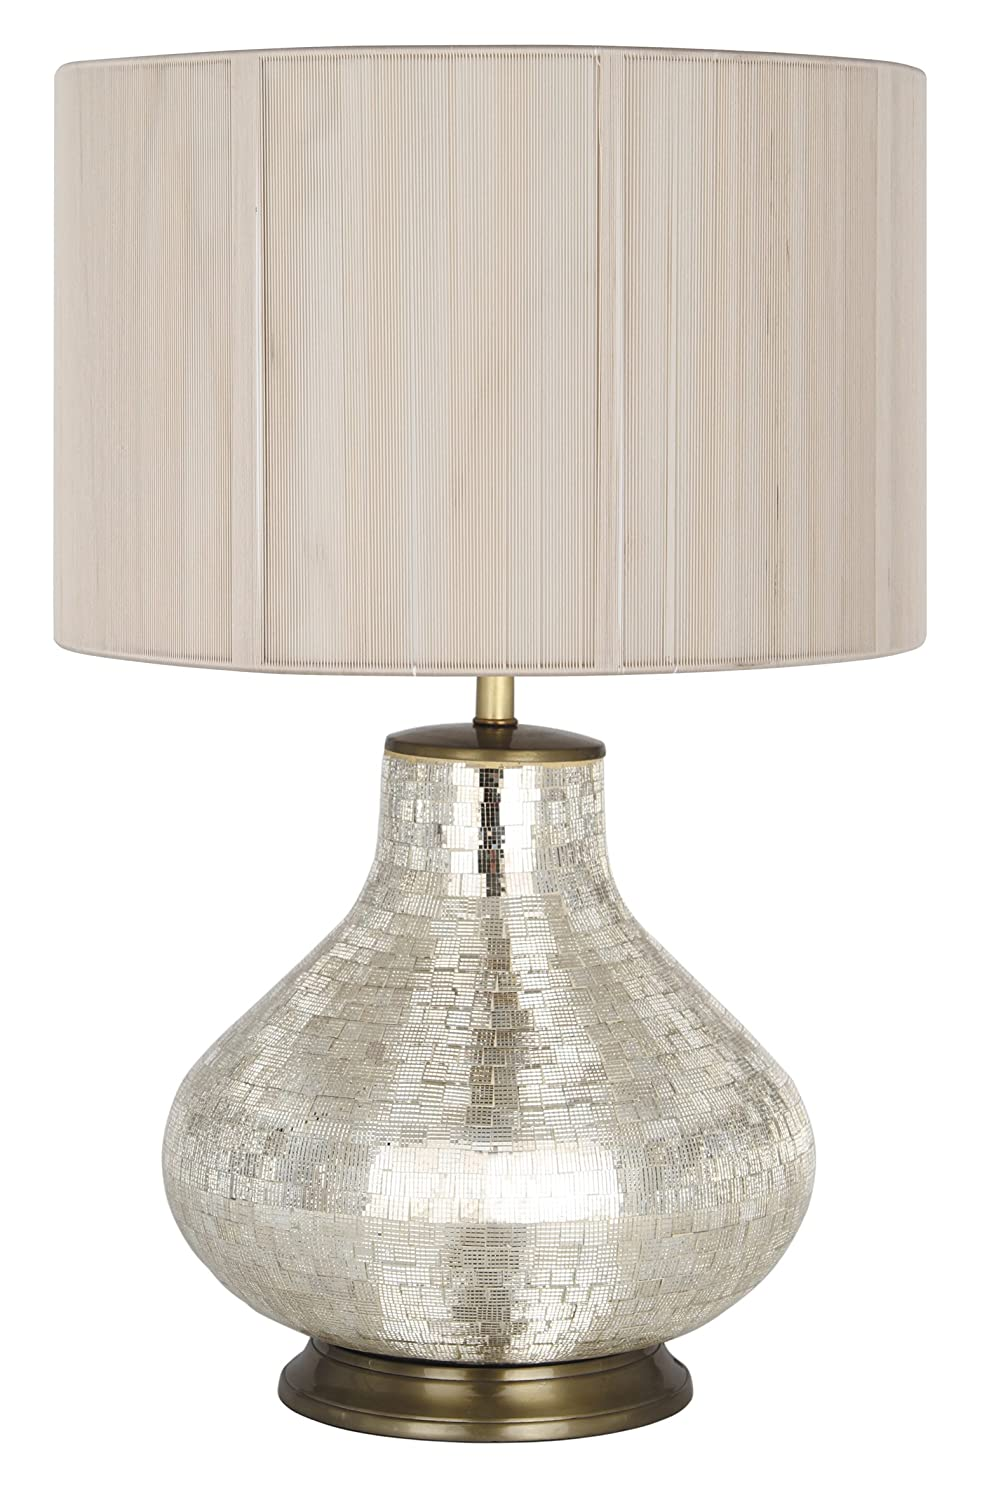 Pacific lighting 970 cha champagne mosaic table lamp base only pacific lighting 970 cha champagne mosaic table lamp base only amazon kitchen home mozeypictures Gallery